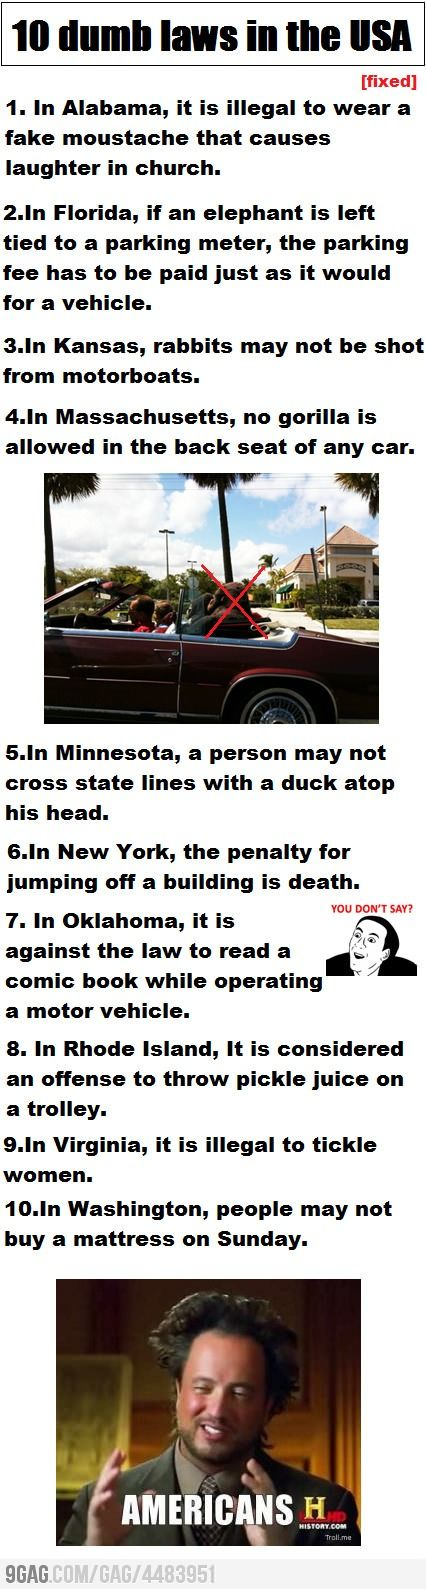 I wonder how many times people did these before they made these laws.